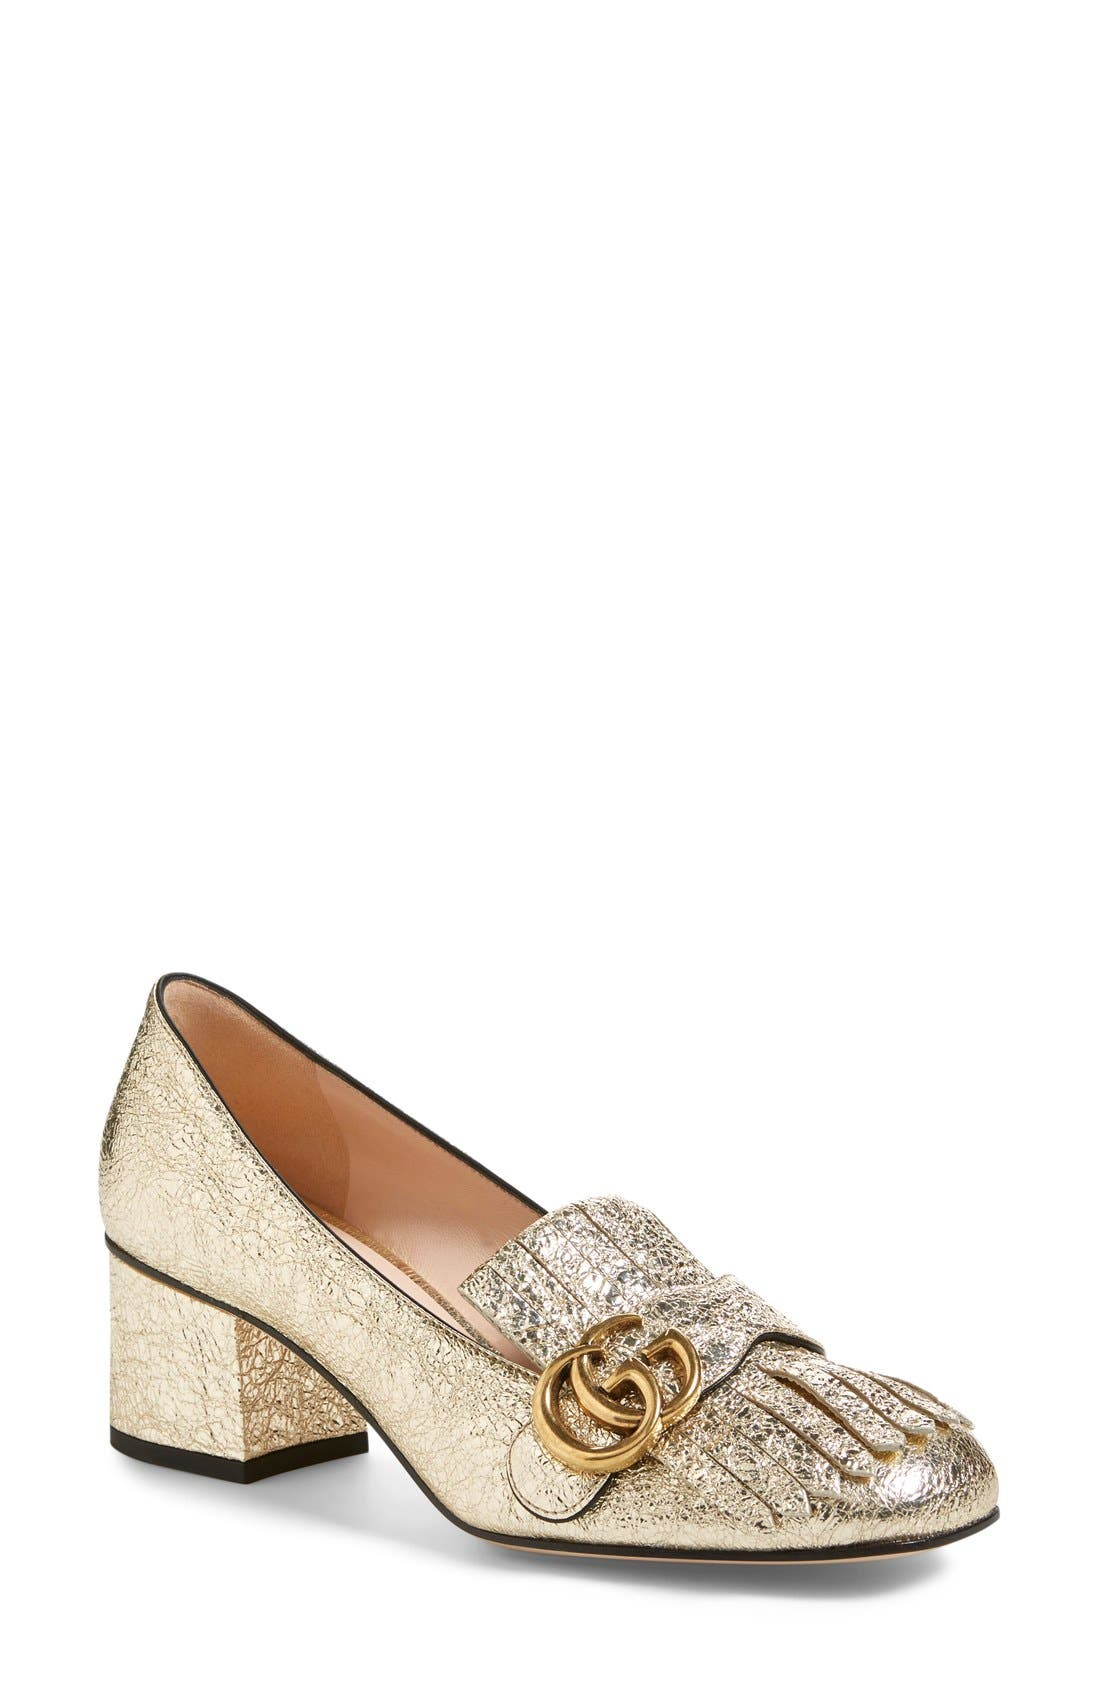 GG Pump,                             Main thumbnail 1, color,                             Gold Leather